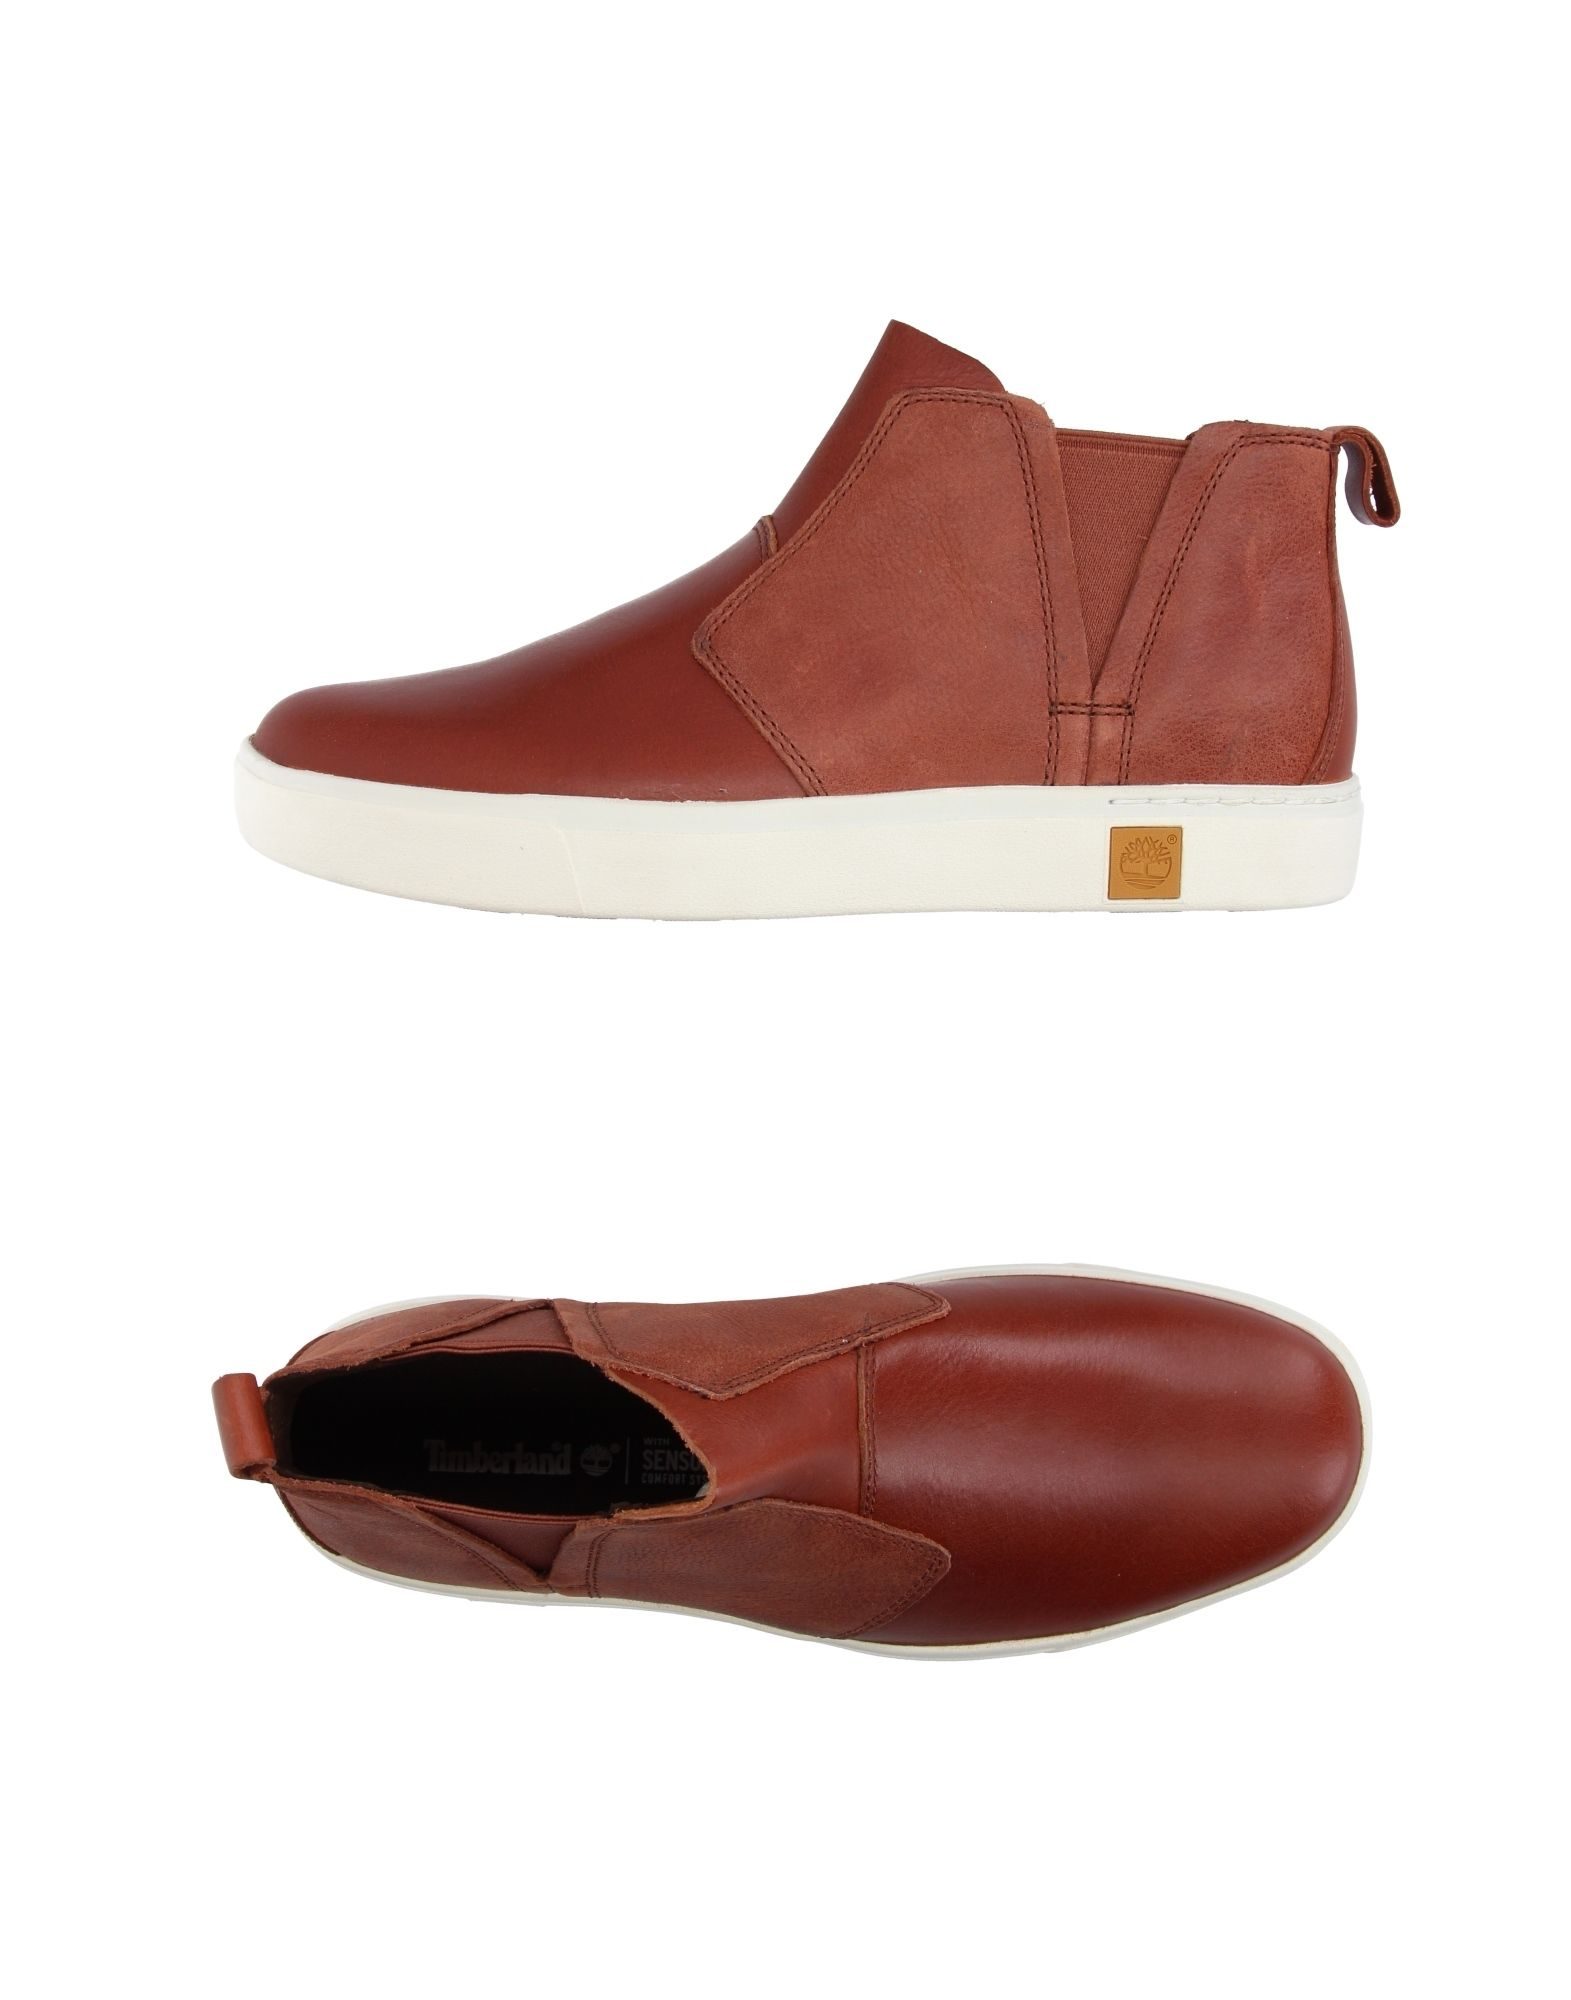 Sneakers Timberland Uomo - Acquista online su